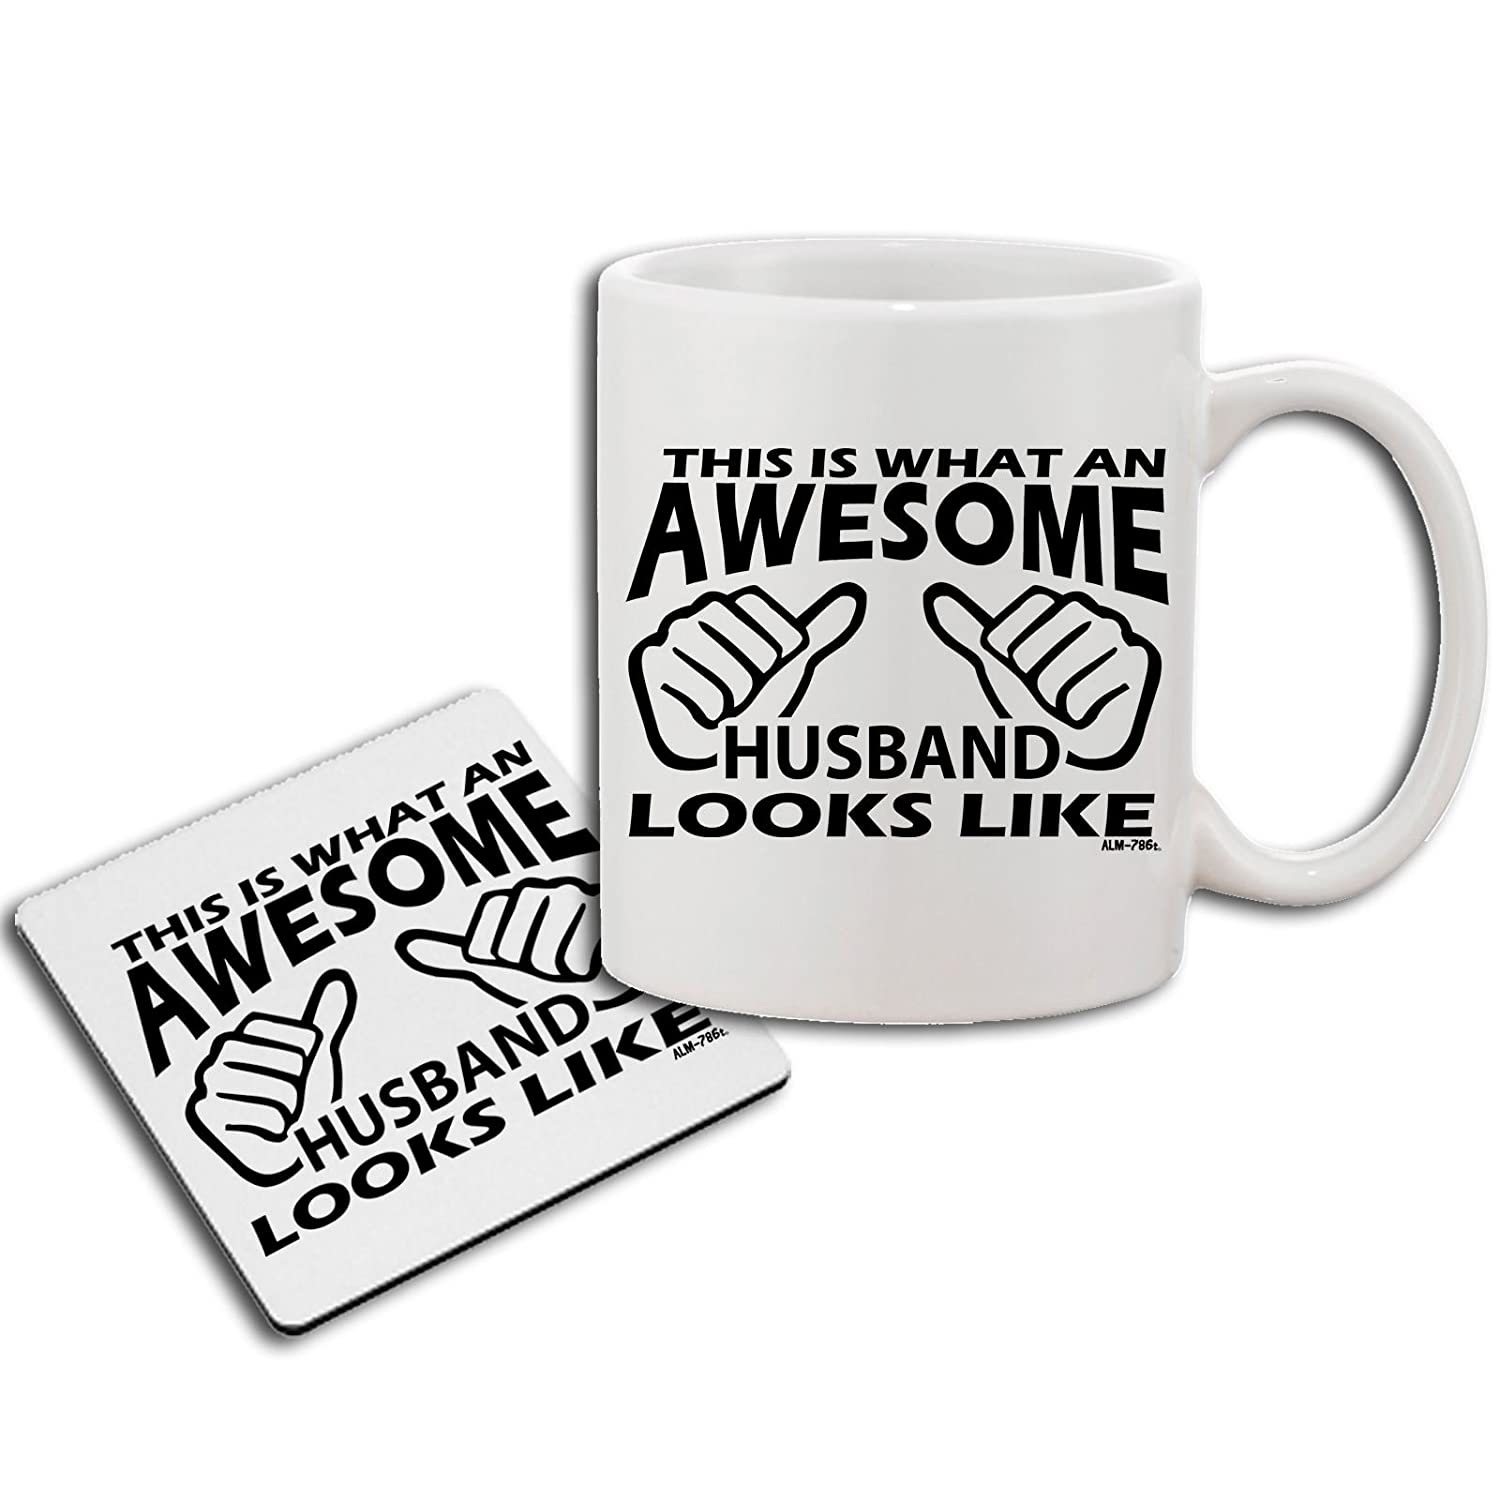 Mens Funny Amusing Printed Awesome Husband Sweatshirt, Mug, Coaster Gift Set ALM786t